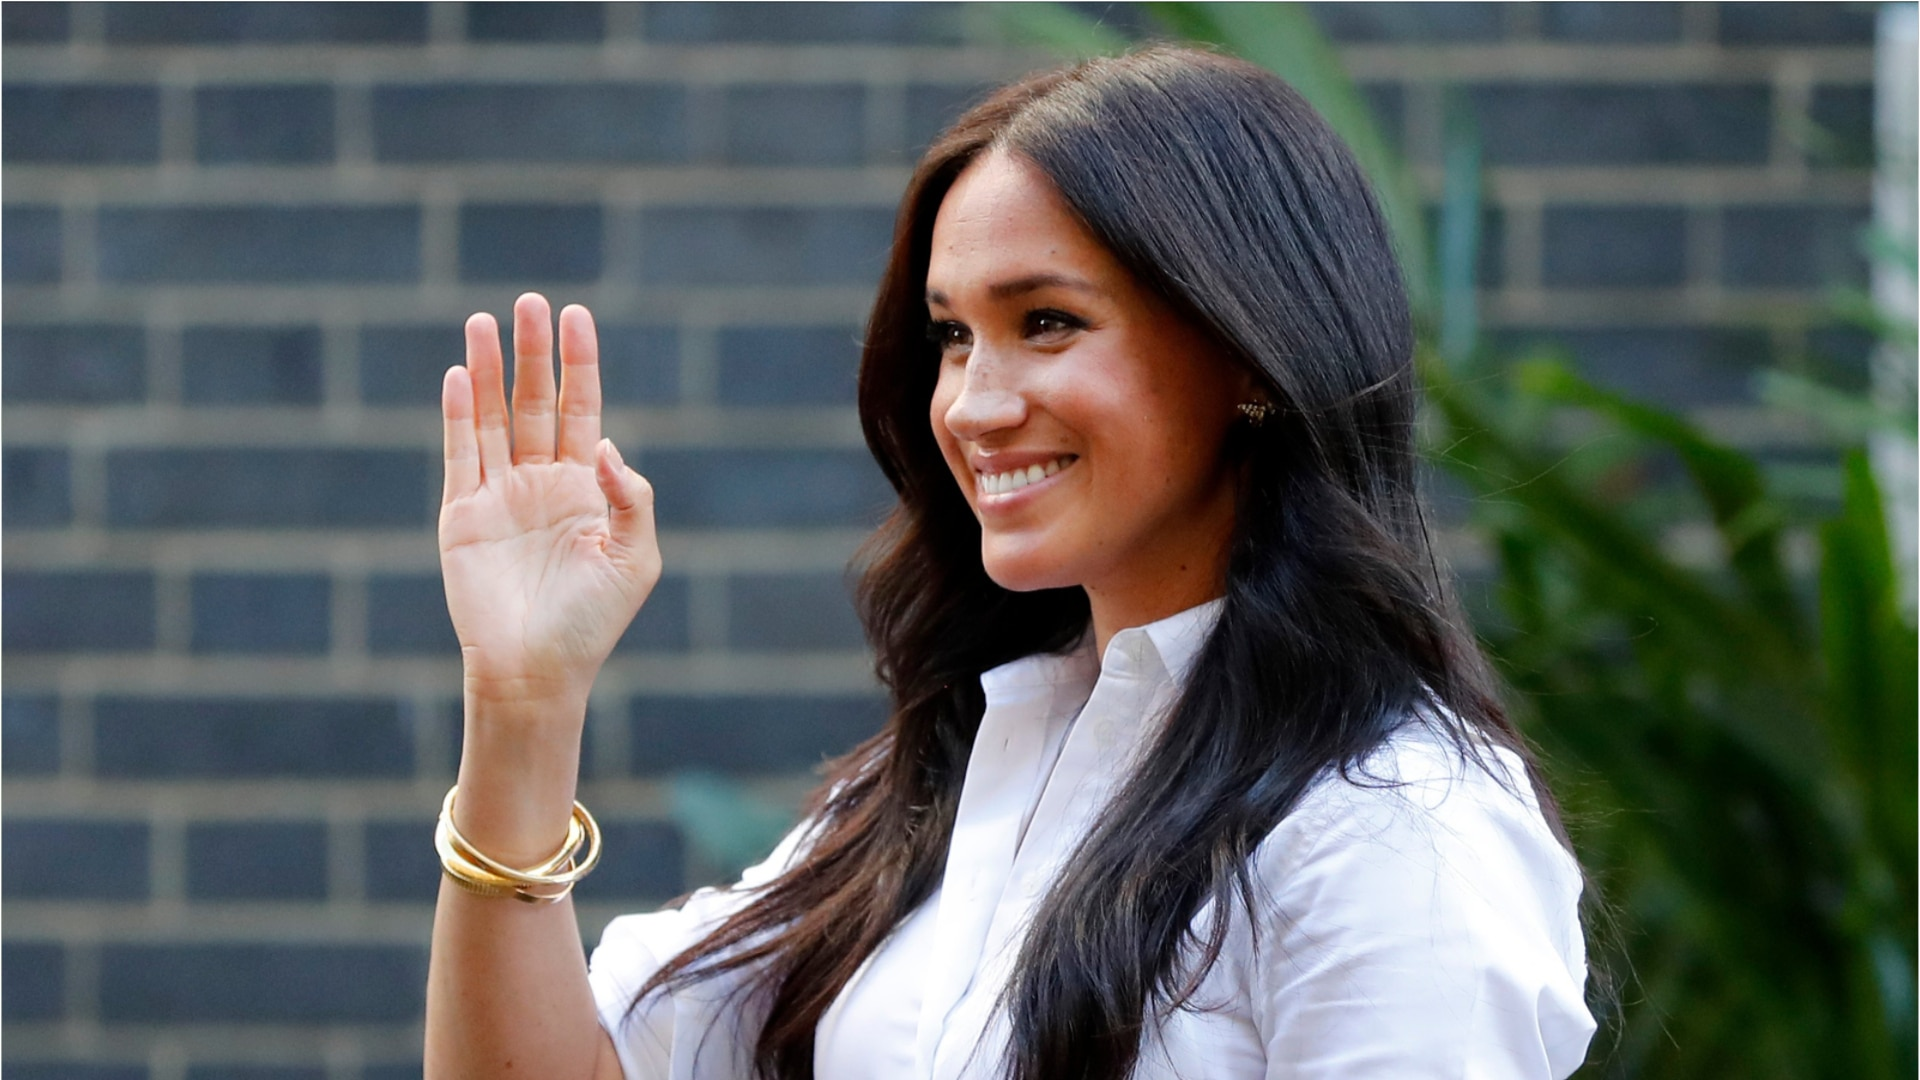 Meghan Markle Ends Maternity Leave With First Official Outing